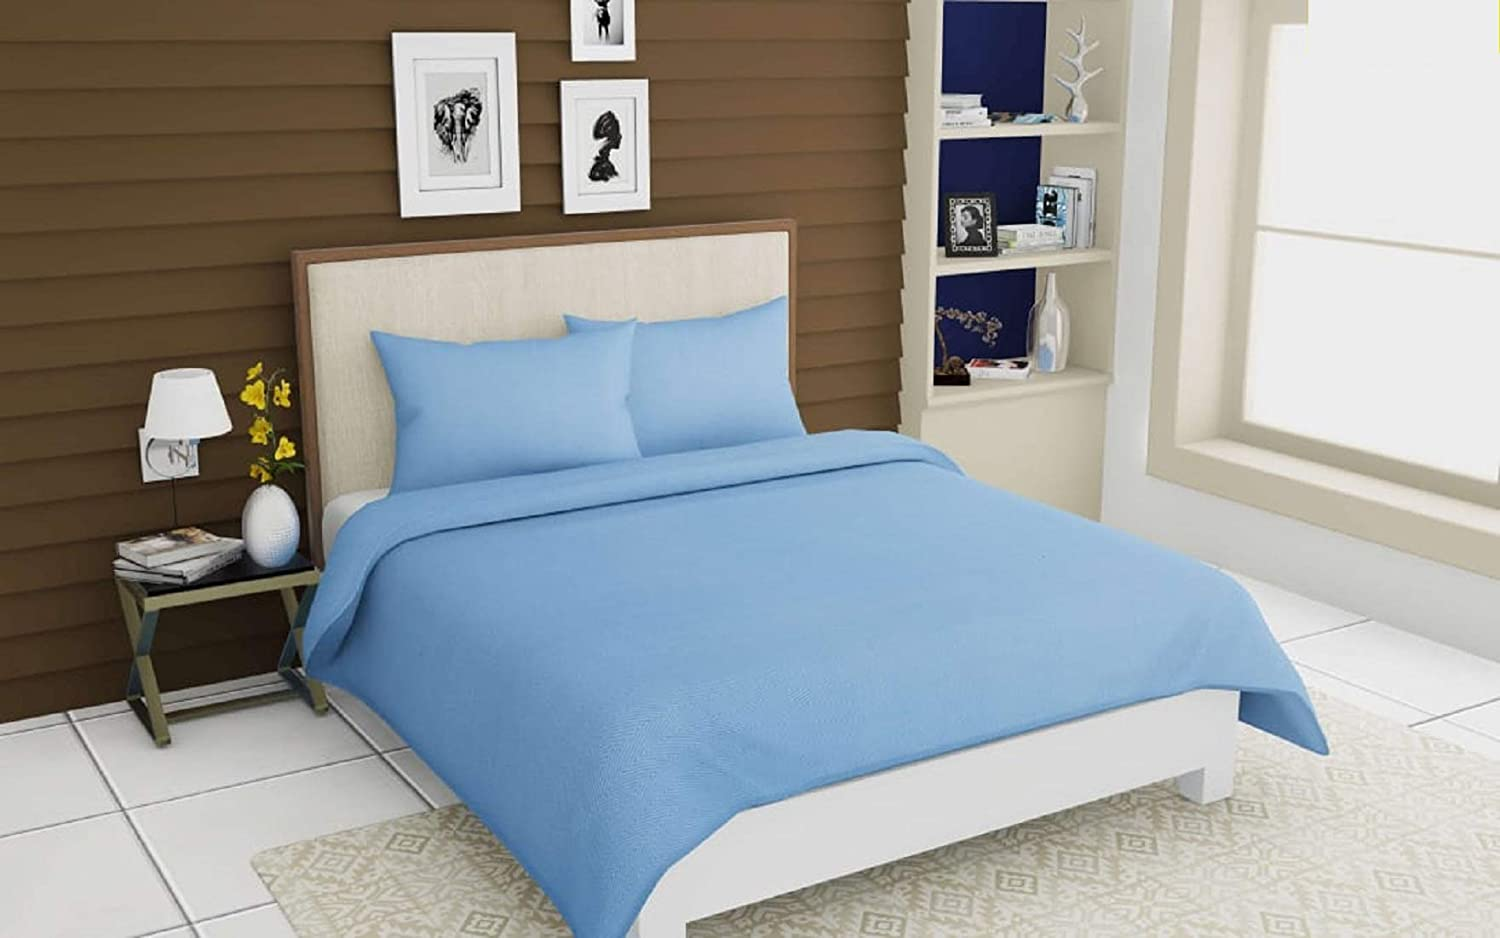 Double Bed Dimensions.Rrc Gless Cotton Double Bedsheet With 2 Pillow Covers Double Bed